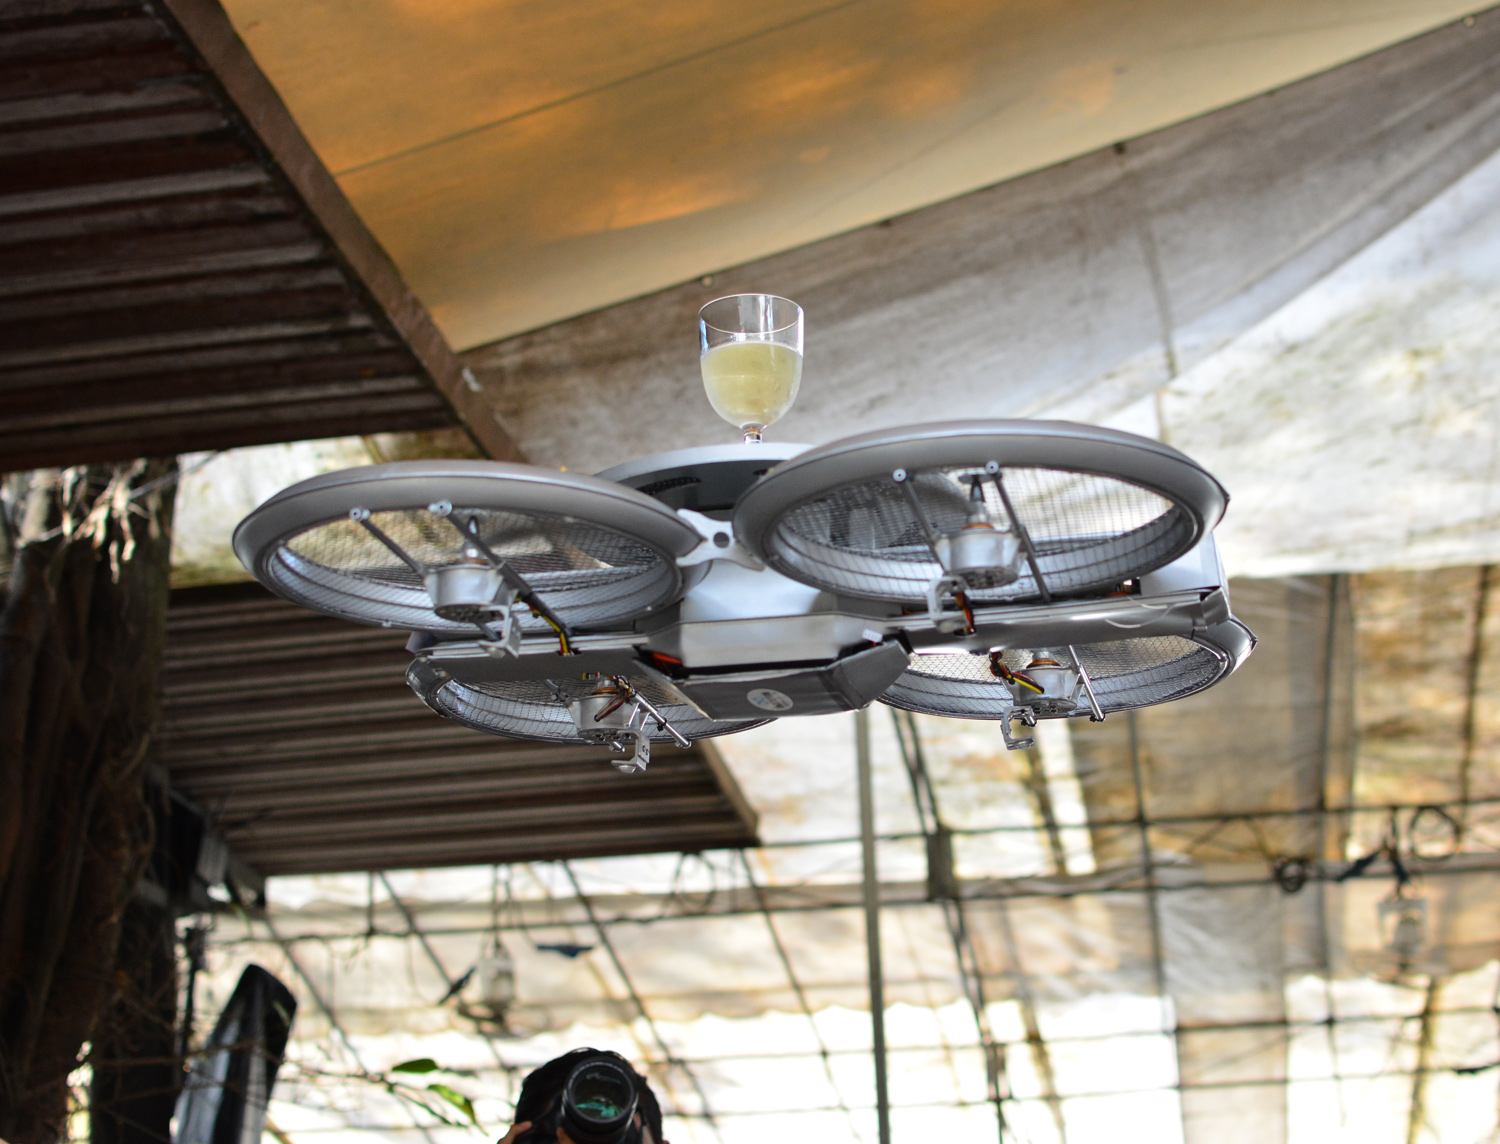 Drone waiters deliver food and drink in Singapore